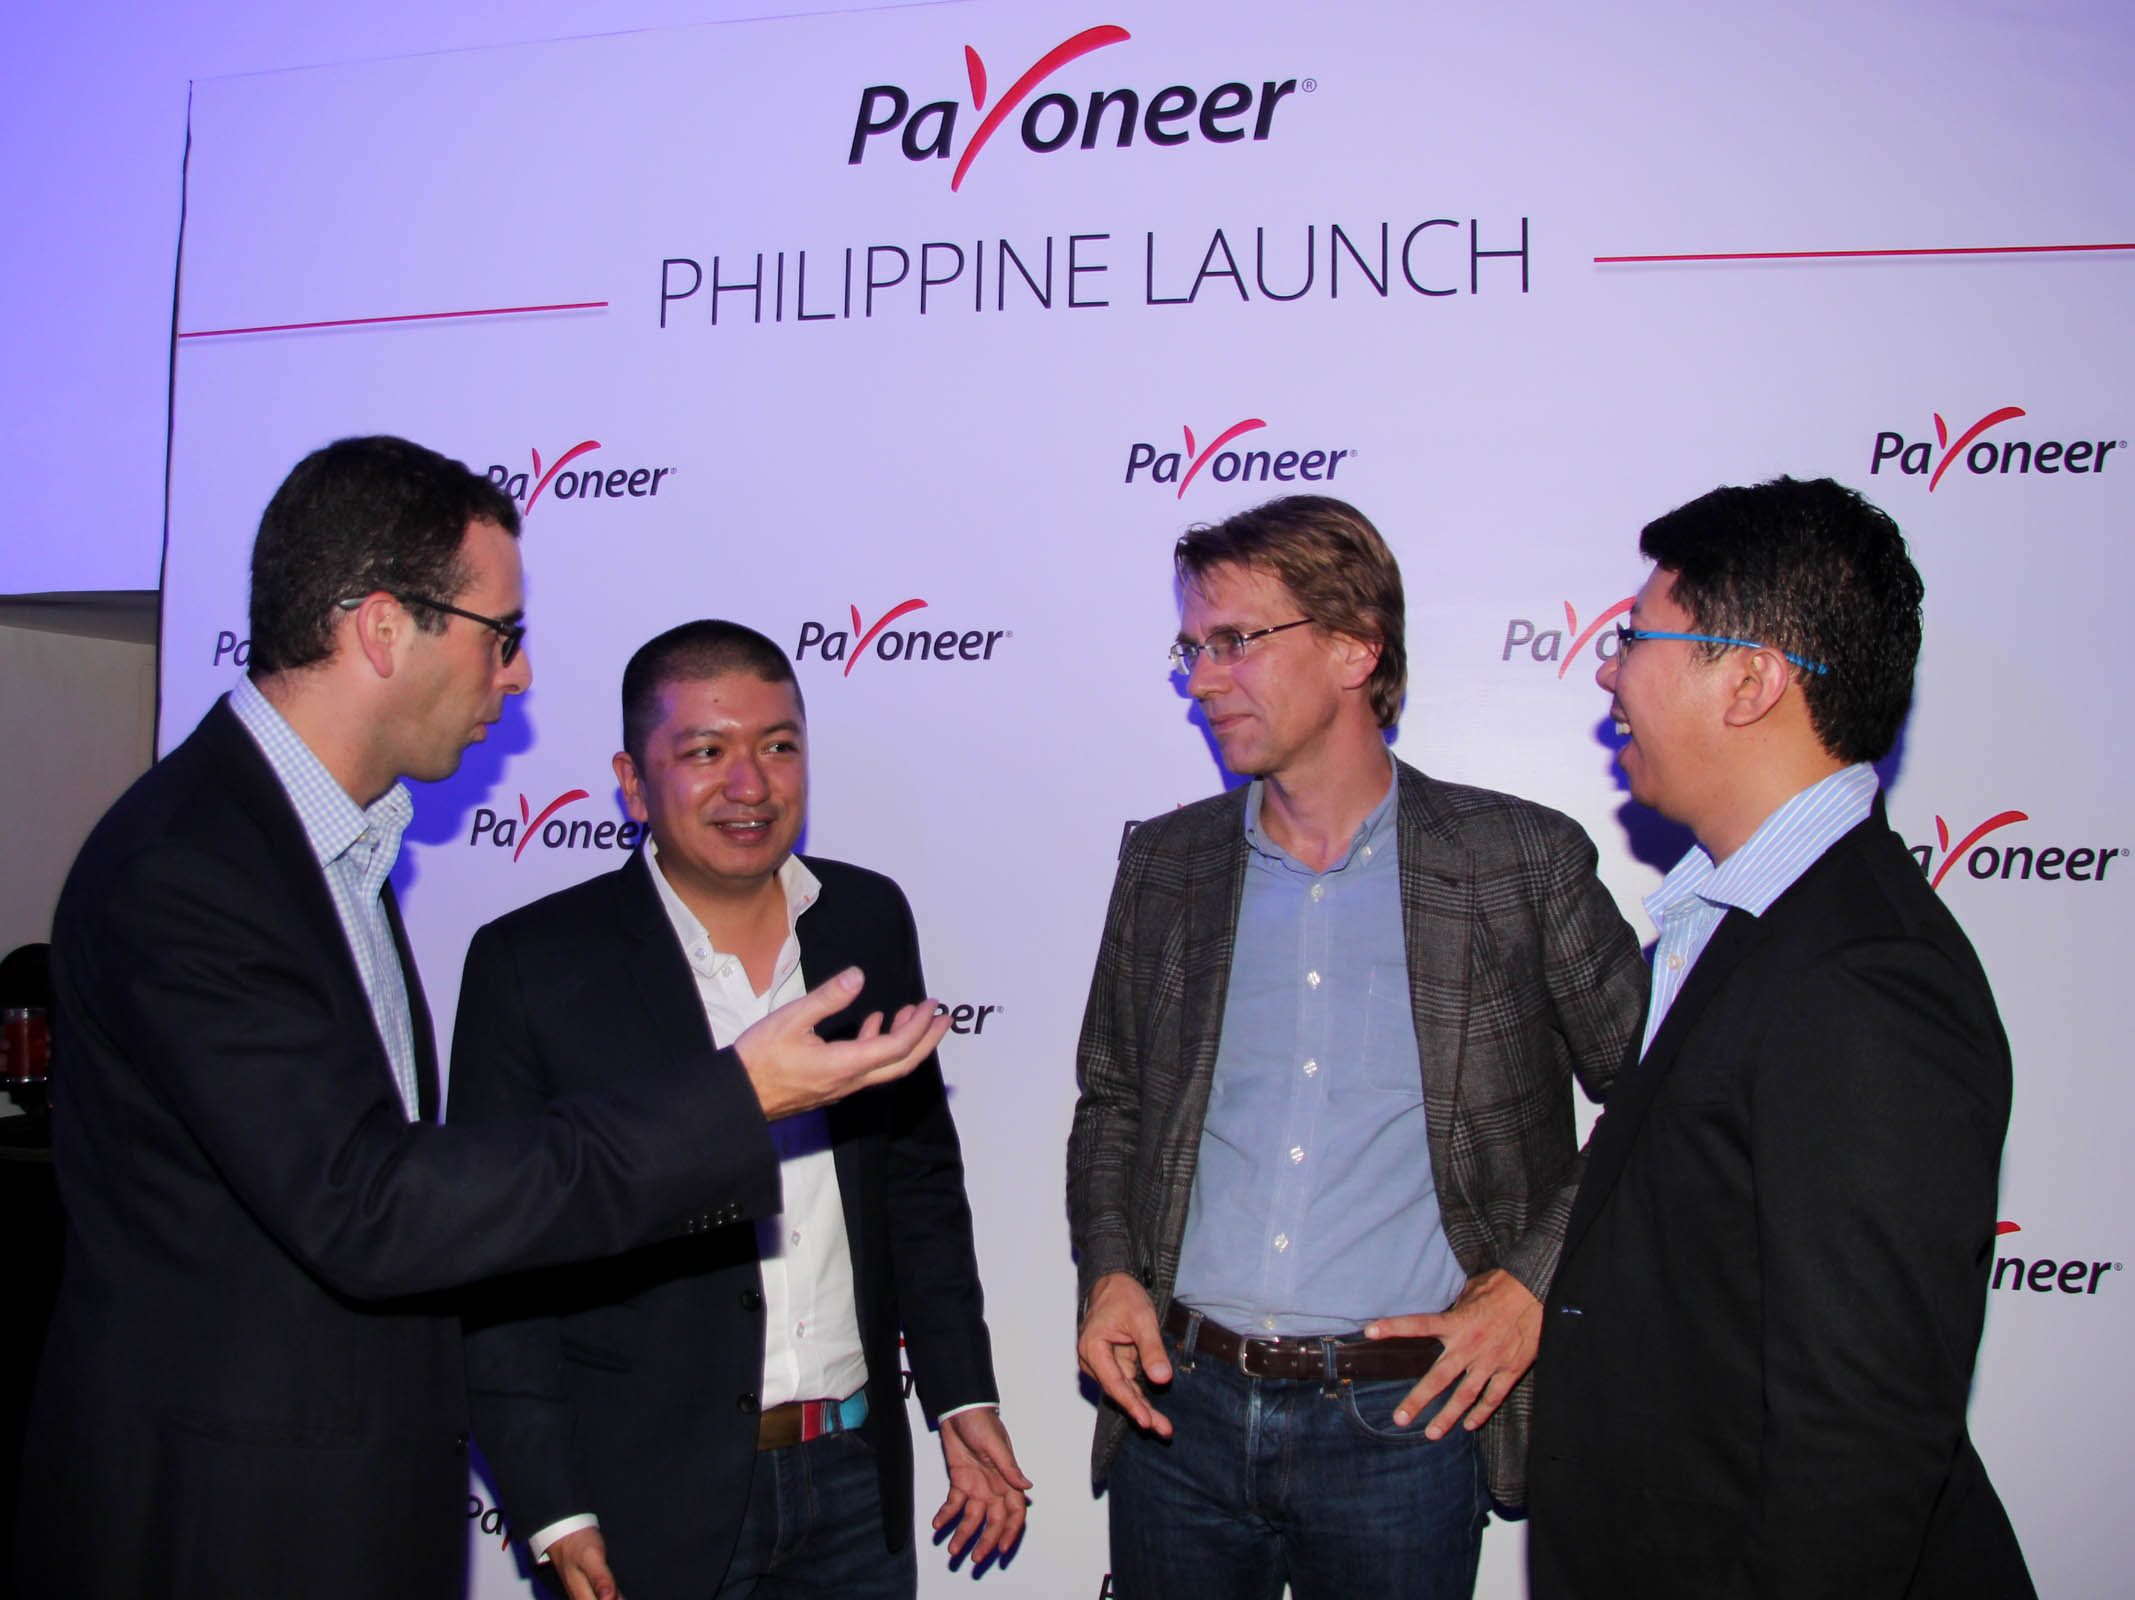 Photo shows (from left) Jonny Stell, VP for Marketing of Payoneer; Miguel Warren, Country Manager, Payoneer Philippines; Patrick de Councy, Head of Asia-Pacific, Payoneer; and Allan Donato, Payoneer Brand Ambassador exchange views during the Payoneer Philippine Launch on Thursday (Sept. 22, 2016) at BGC (The Fort Strip) in Taguig City. Headquartered in New York City, Payoneer is a leading online payments company transforming the way businesses send and receive cross-border payments. (Photo: Gil Calinga/PNA)